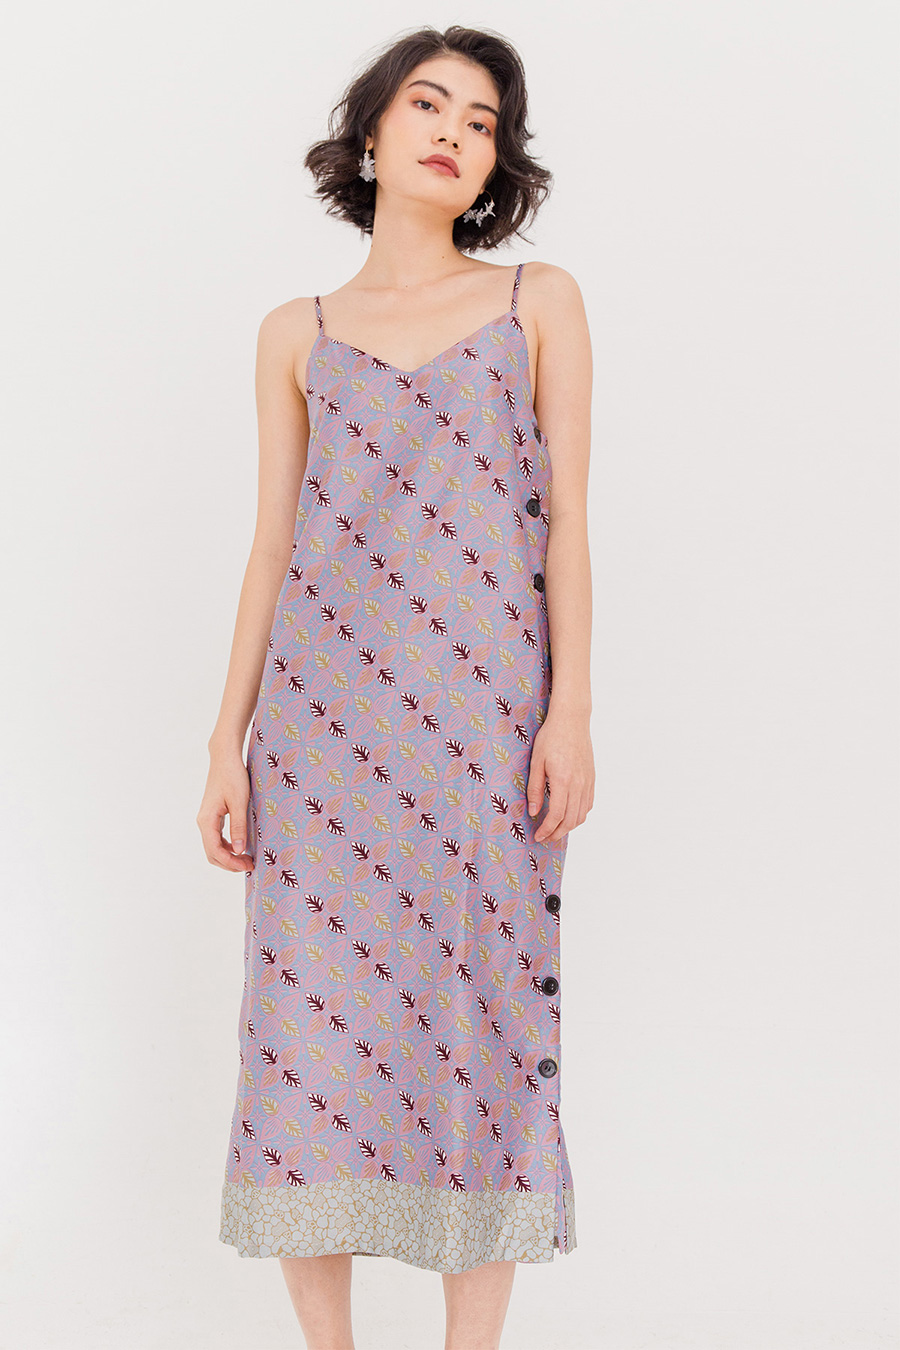 FRESA MIDI DRESS - HEATHER [BY MODPARADE]